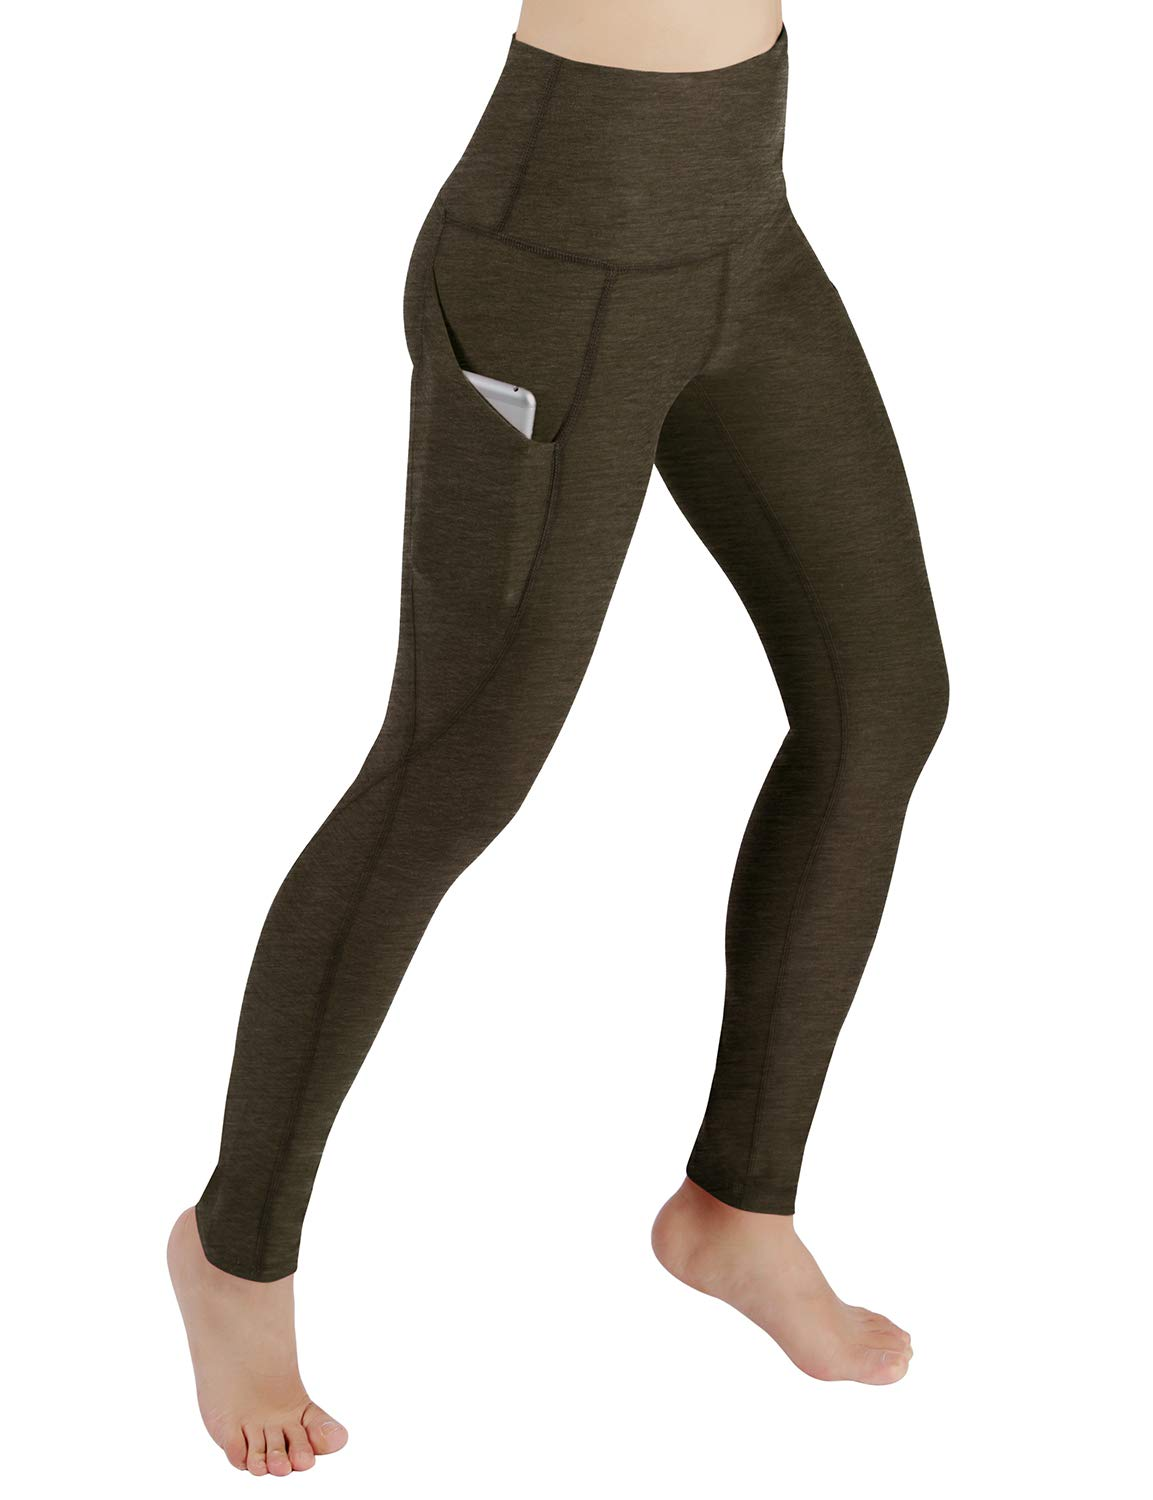 ODODOS High Waist Out Pocket Yoga Pants Tummy Control Workout Running 4 Way Stretch Yoga Leggings,Olive,X-Small